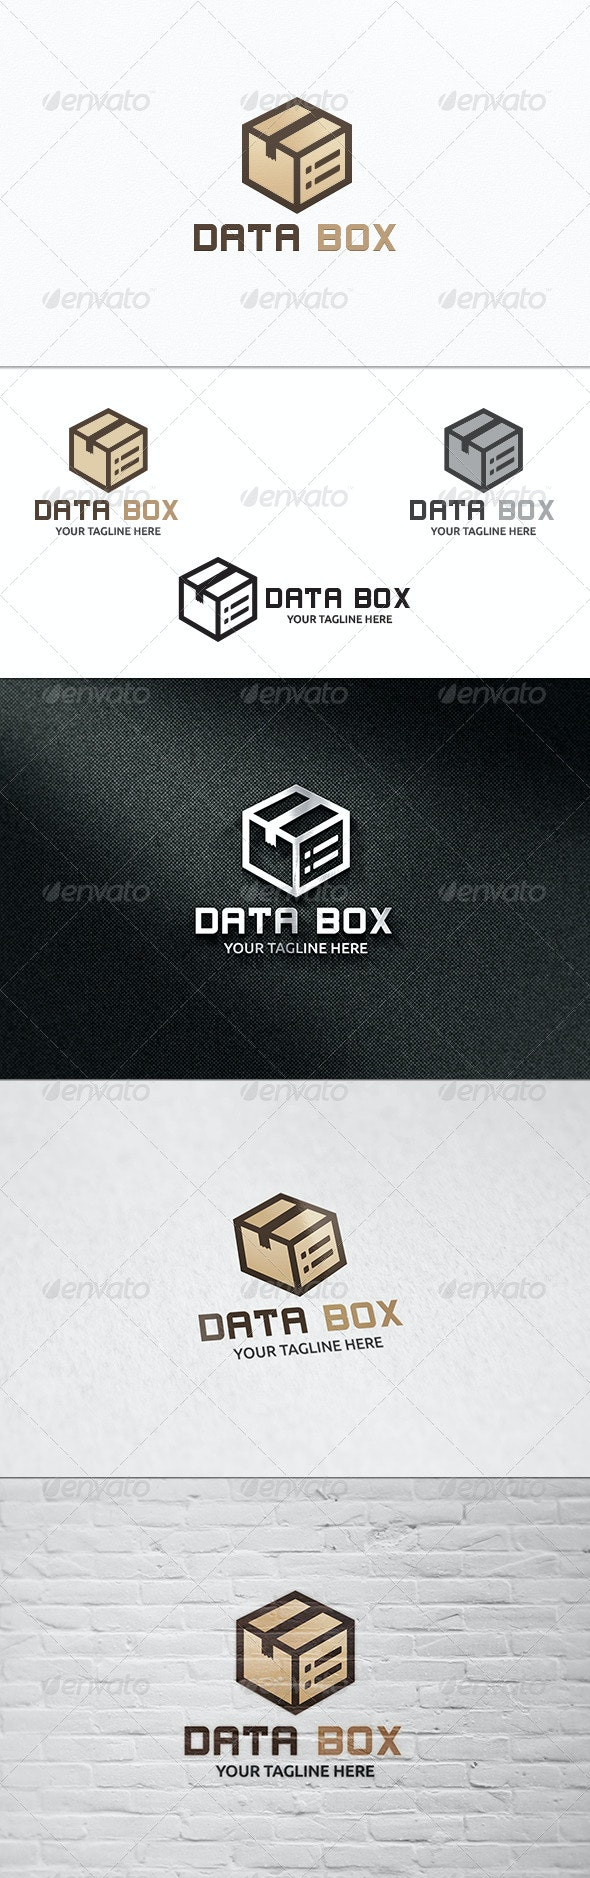 Data Box - Logo Template